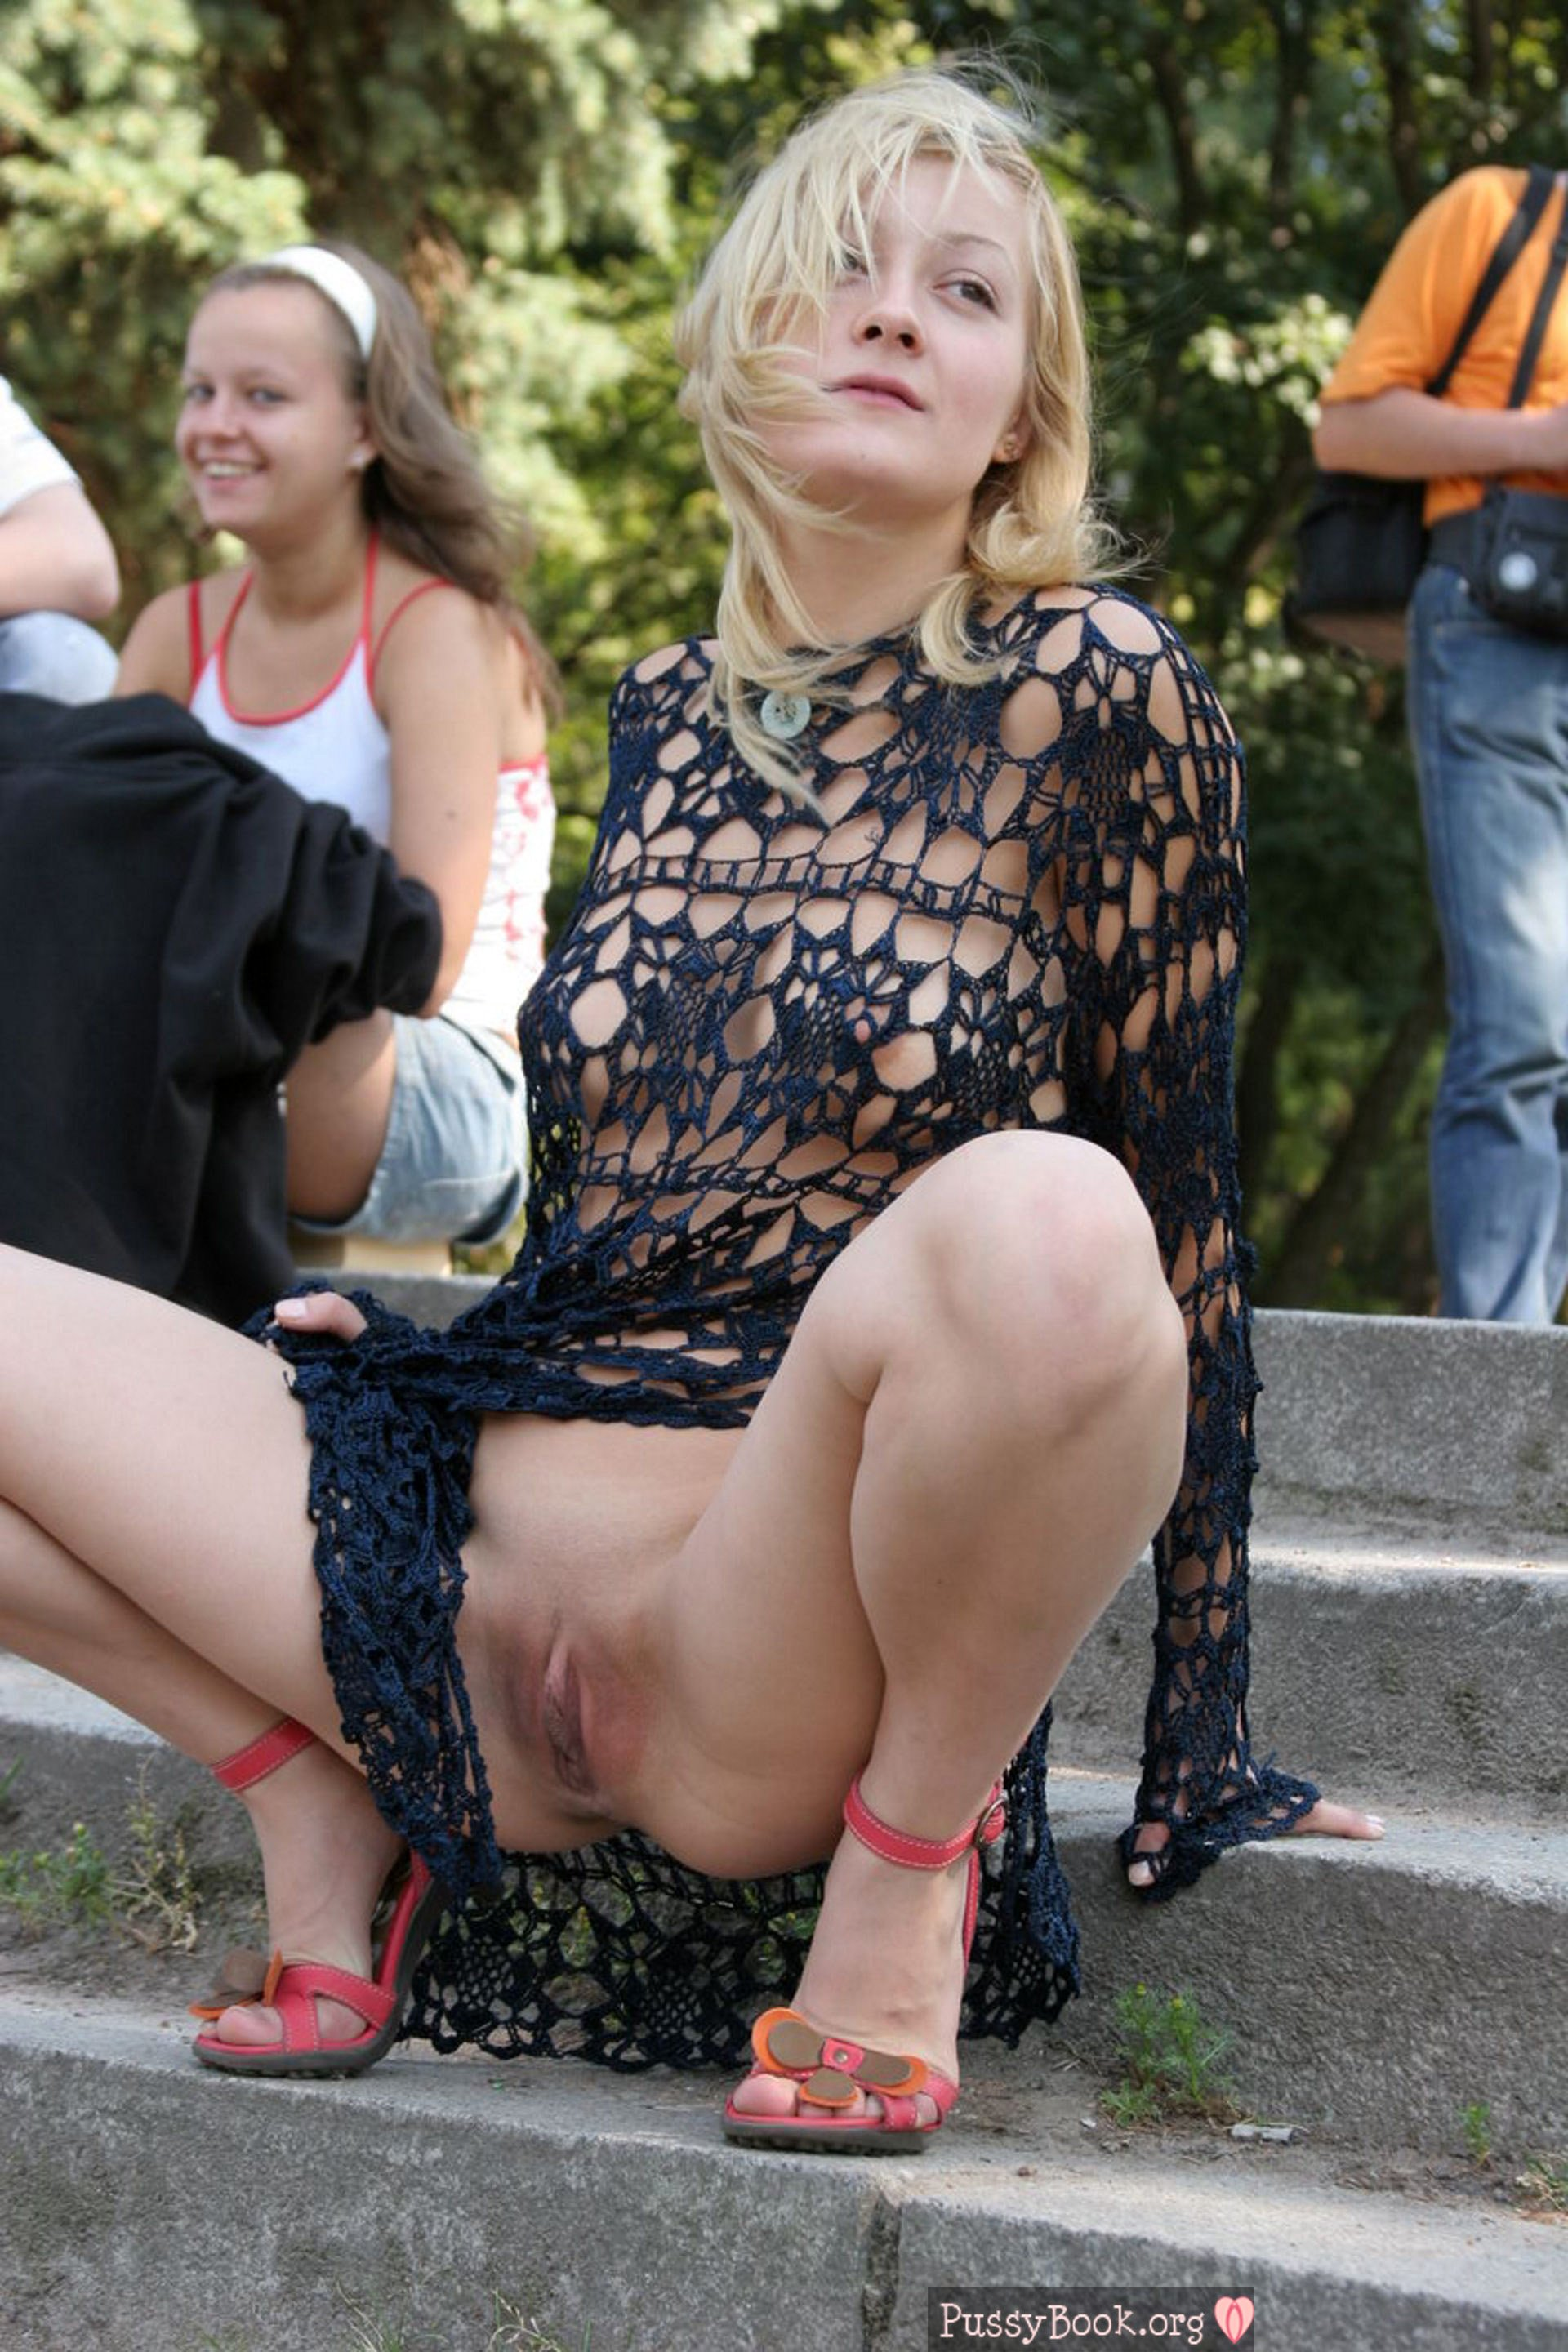 girl flashing her pussy in public